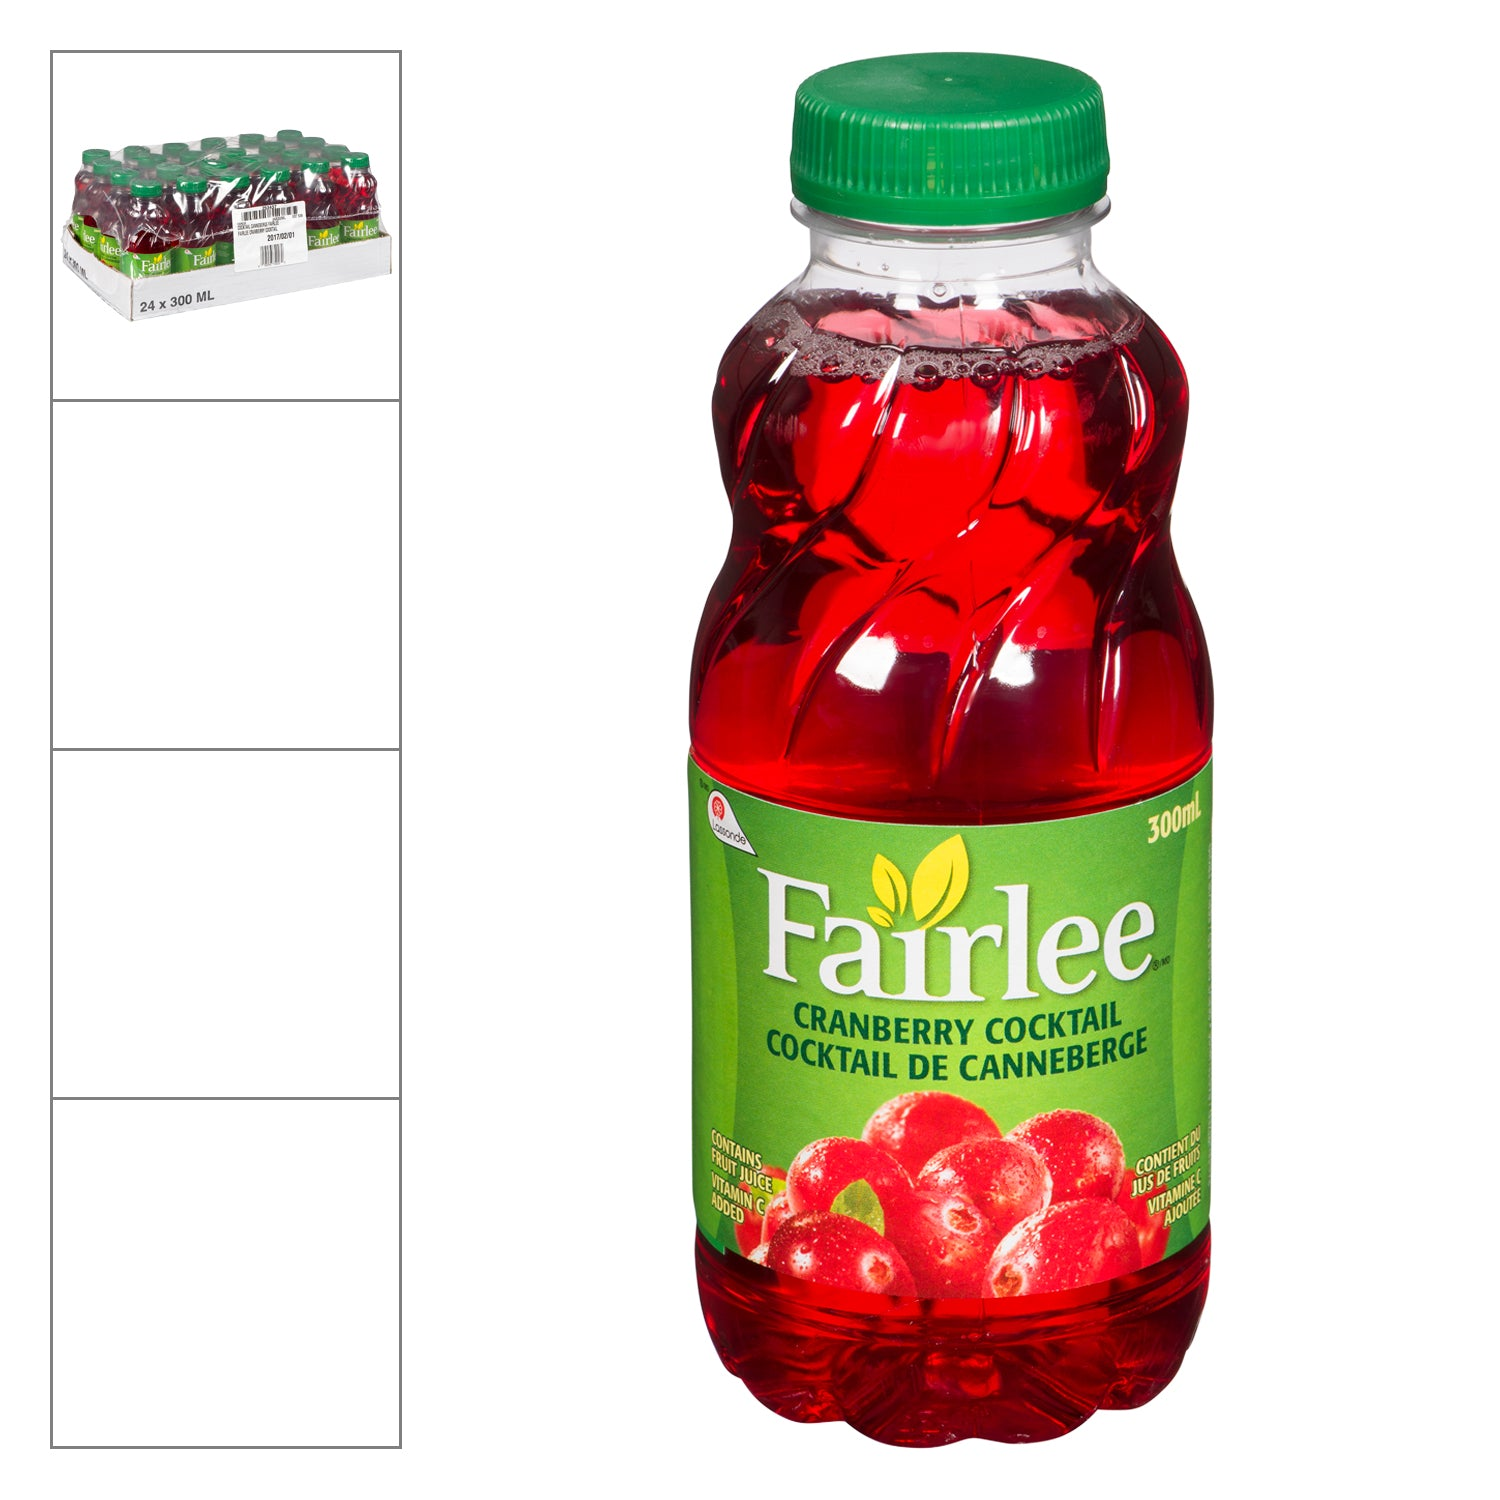 Fairlee Cranberry Cocktail Juice 300 ml - 24 Pack [$0.79/each]